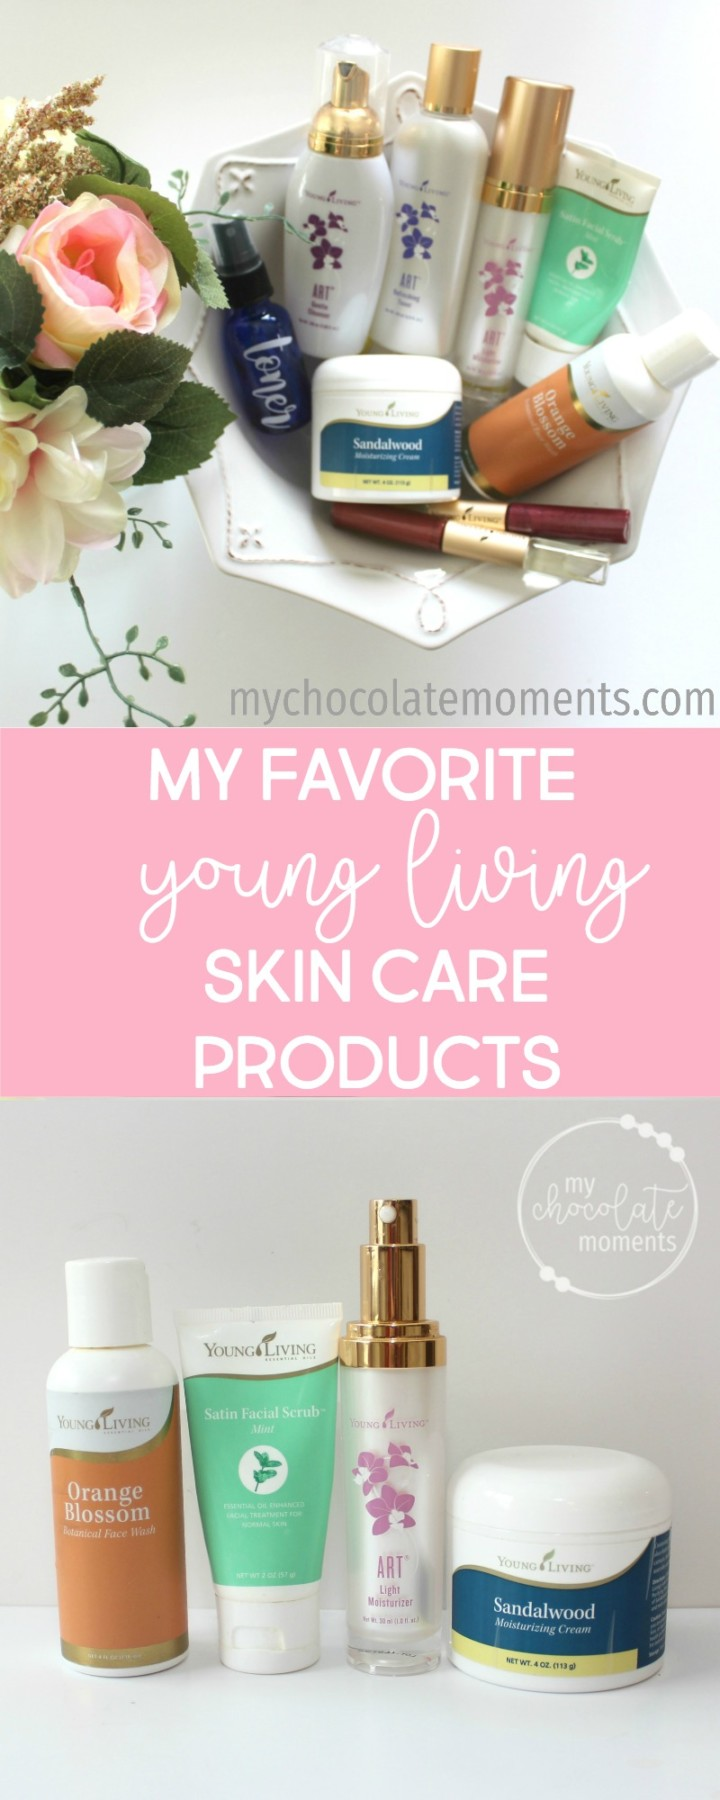 My favorite Young Living skin care products and what I use on a daily basis to keep my skin looking great